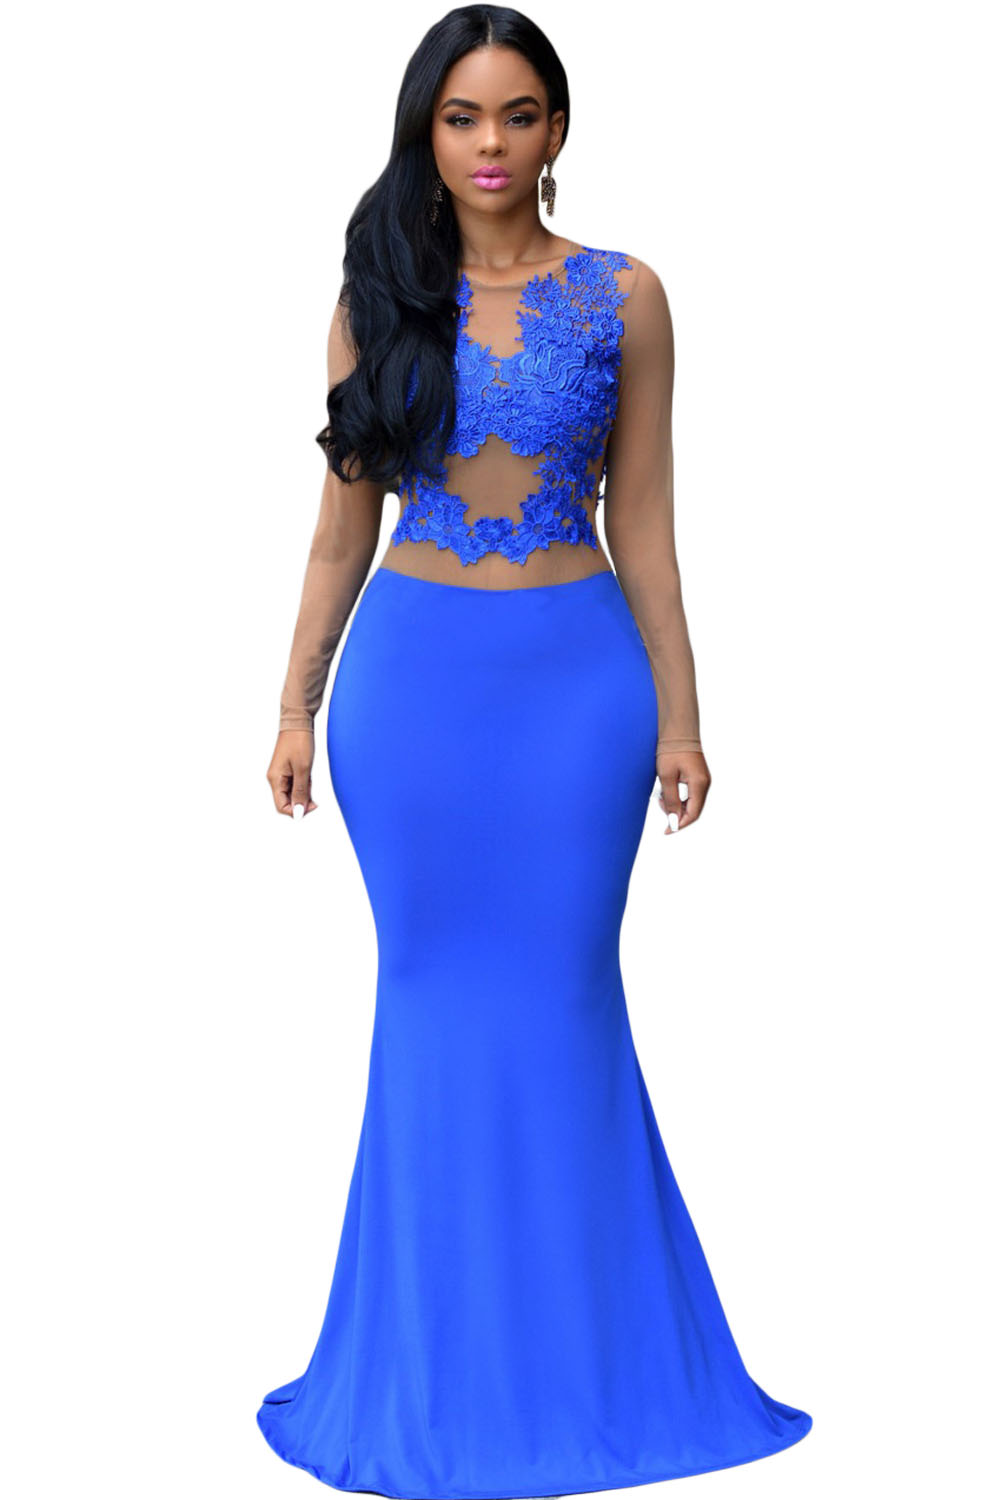 sexy-royal-blue-nude-mesh-accent-maxi-dress-llc60831p-2-1